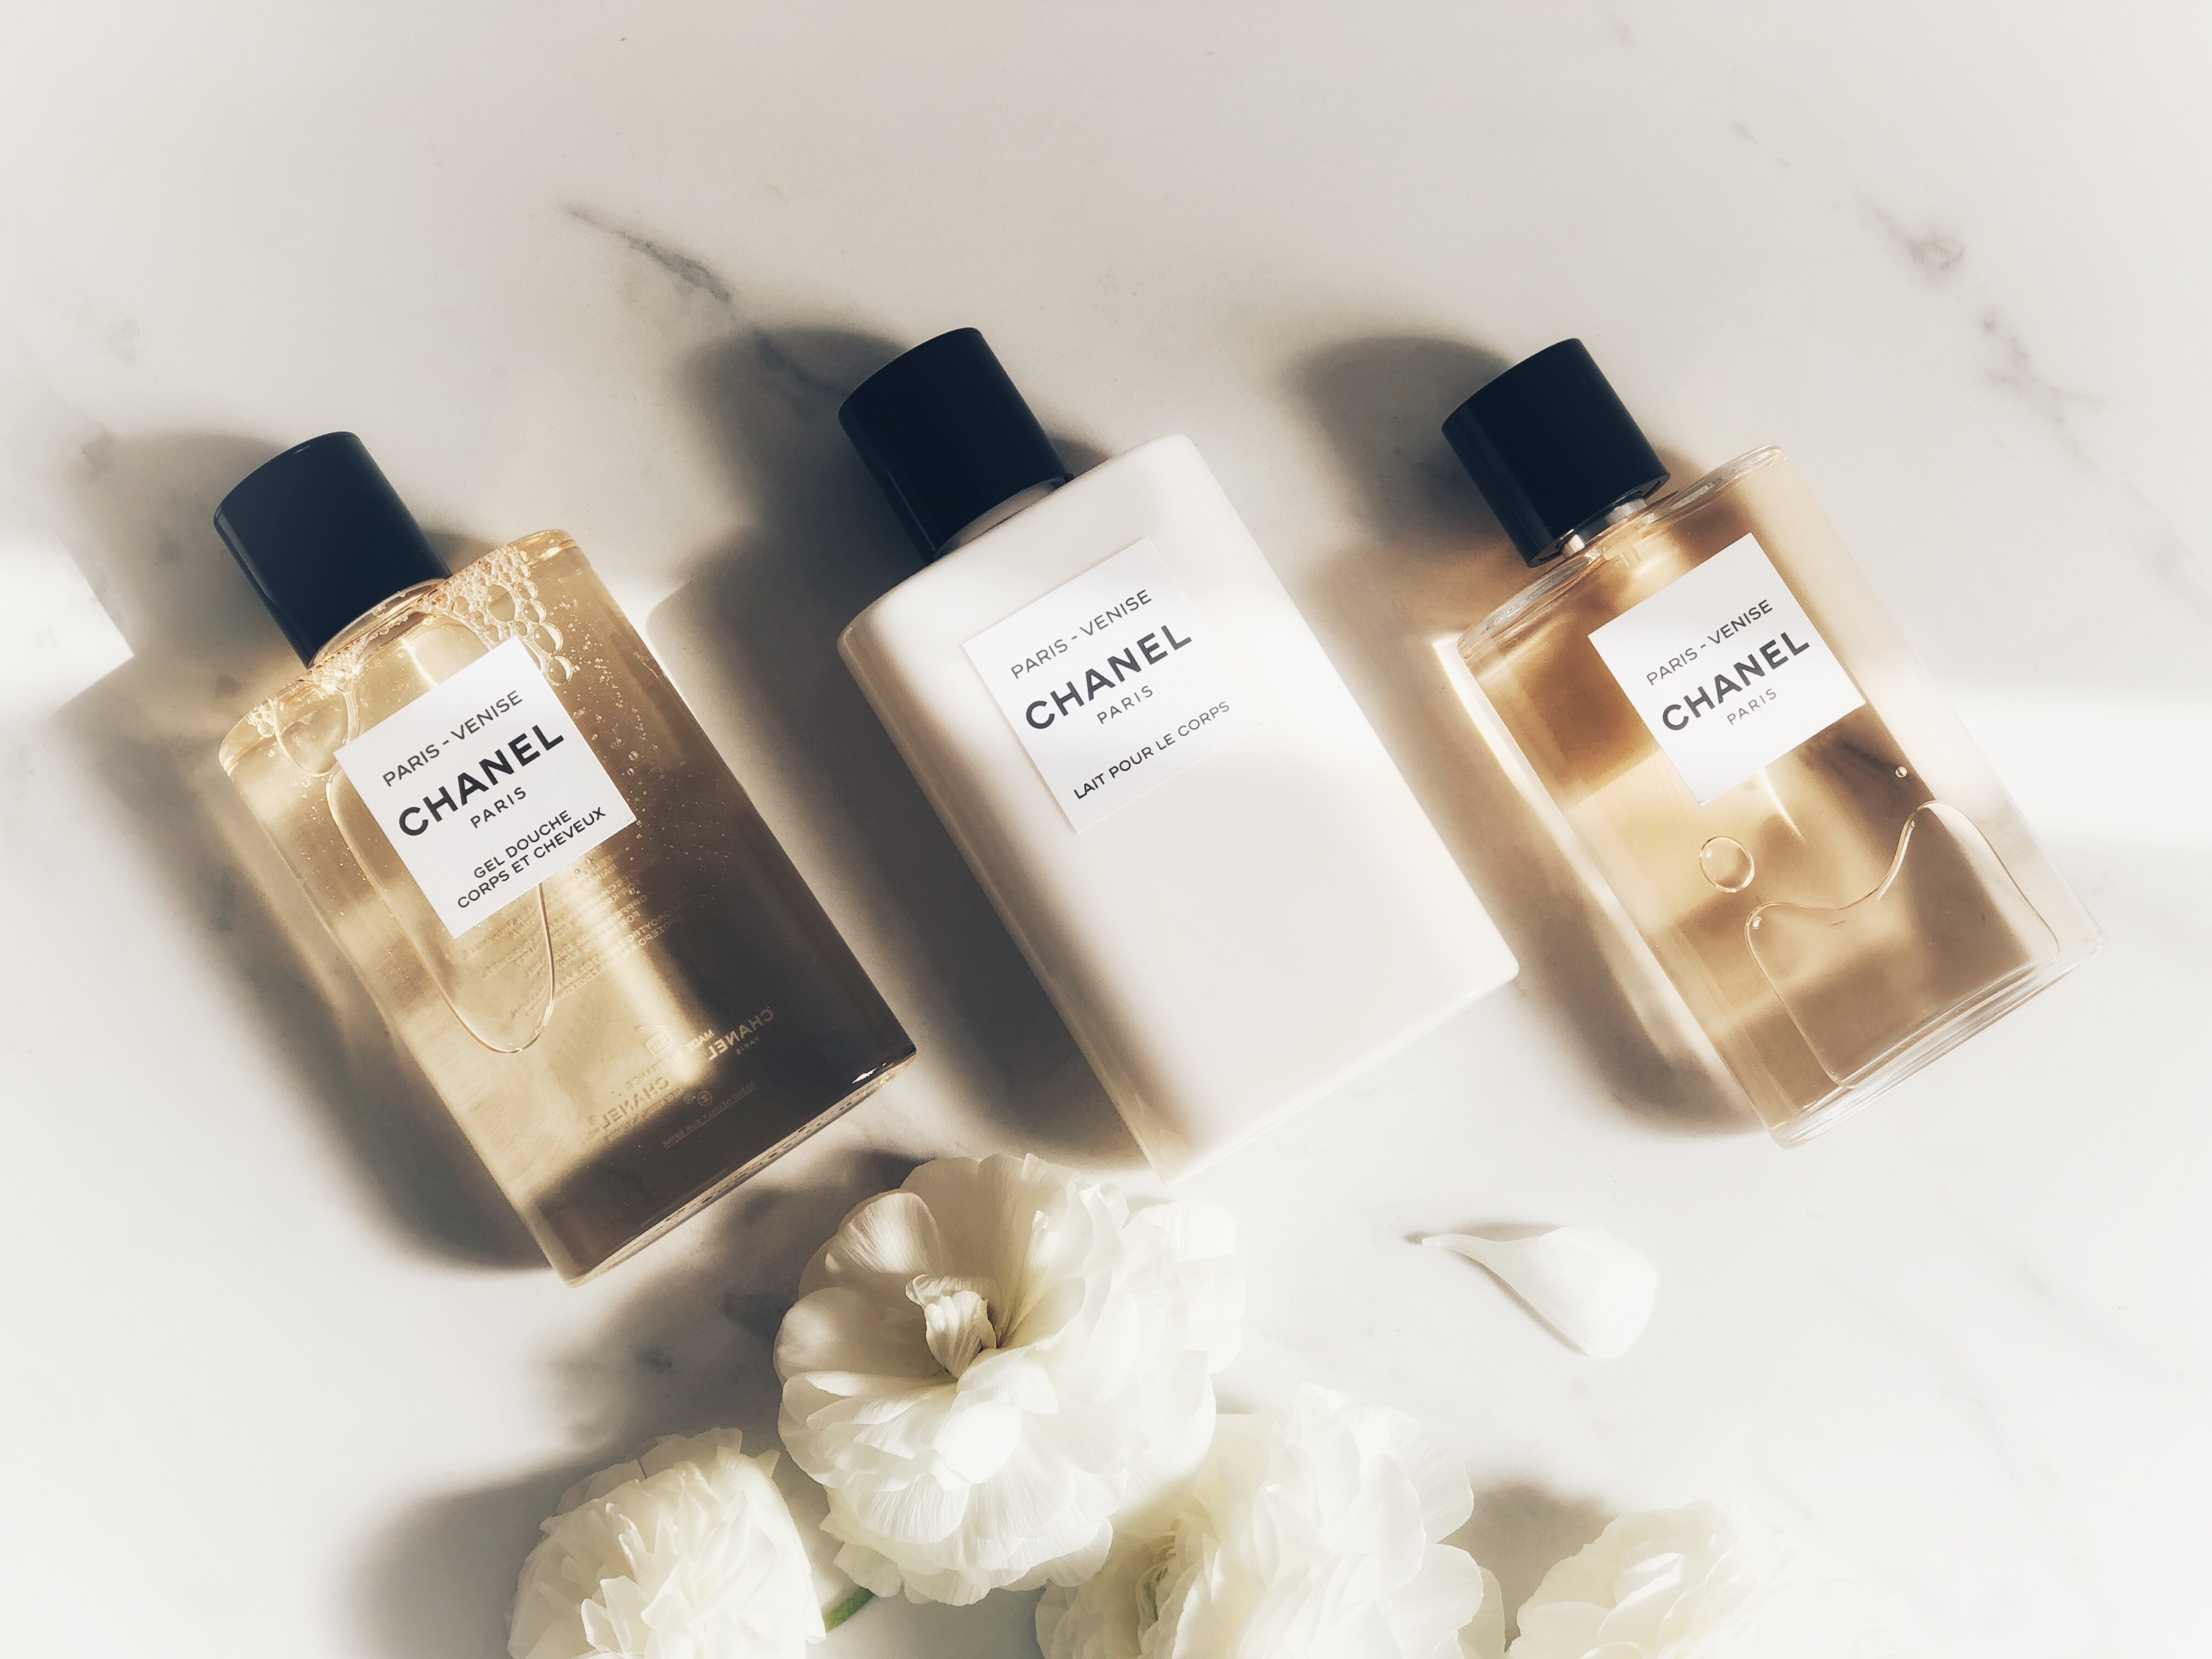 17beaead0f LES EAUX DE CHANEL – A SCENTED JOURNEY – In My Bag